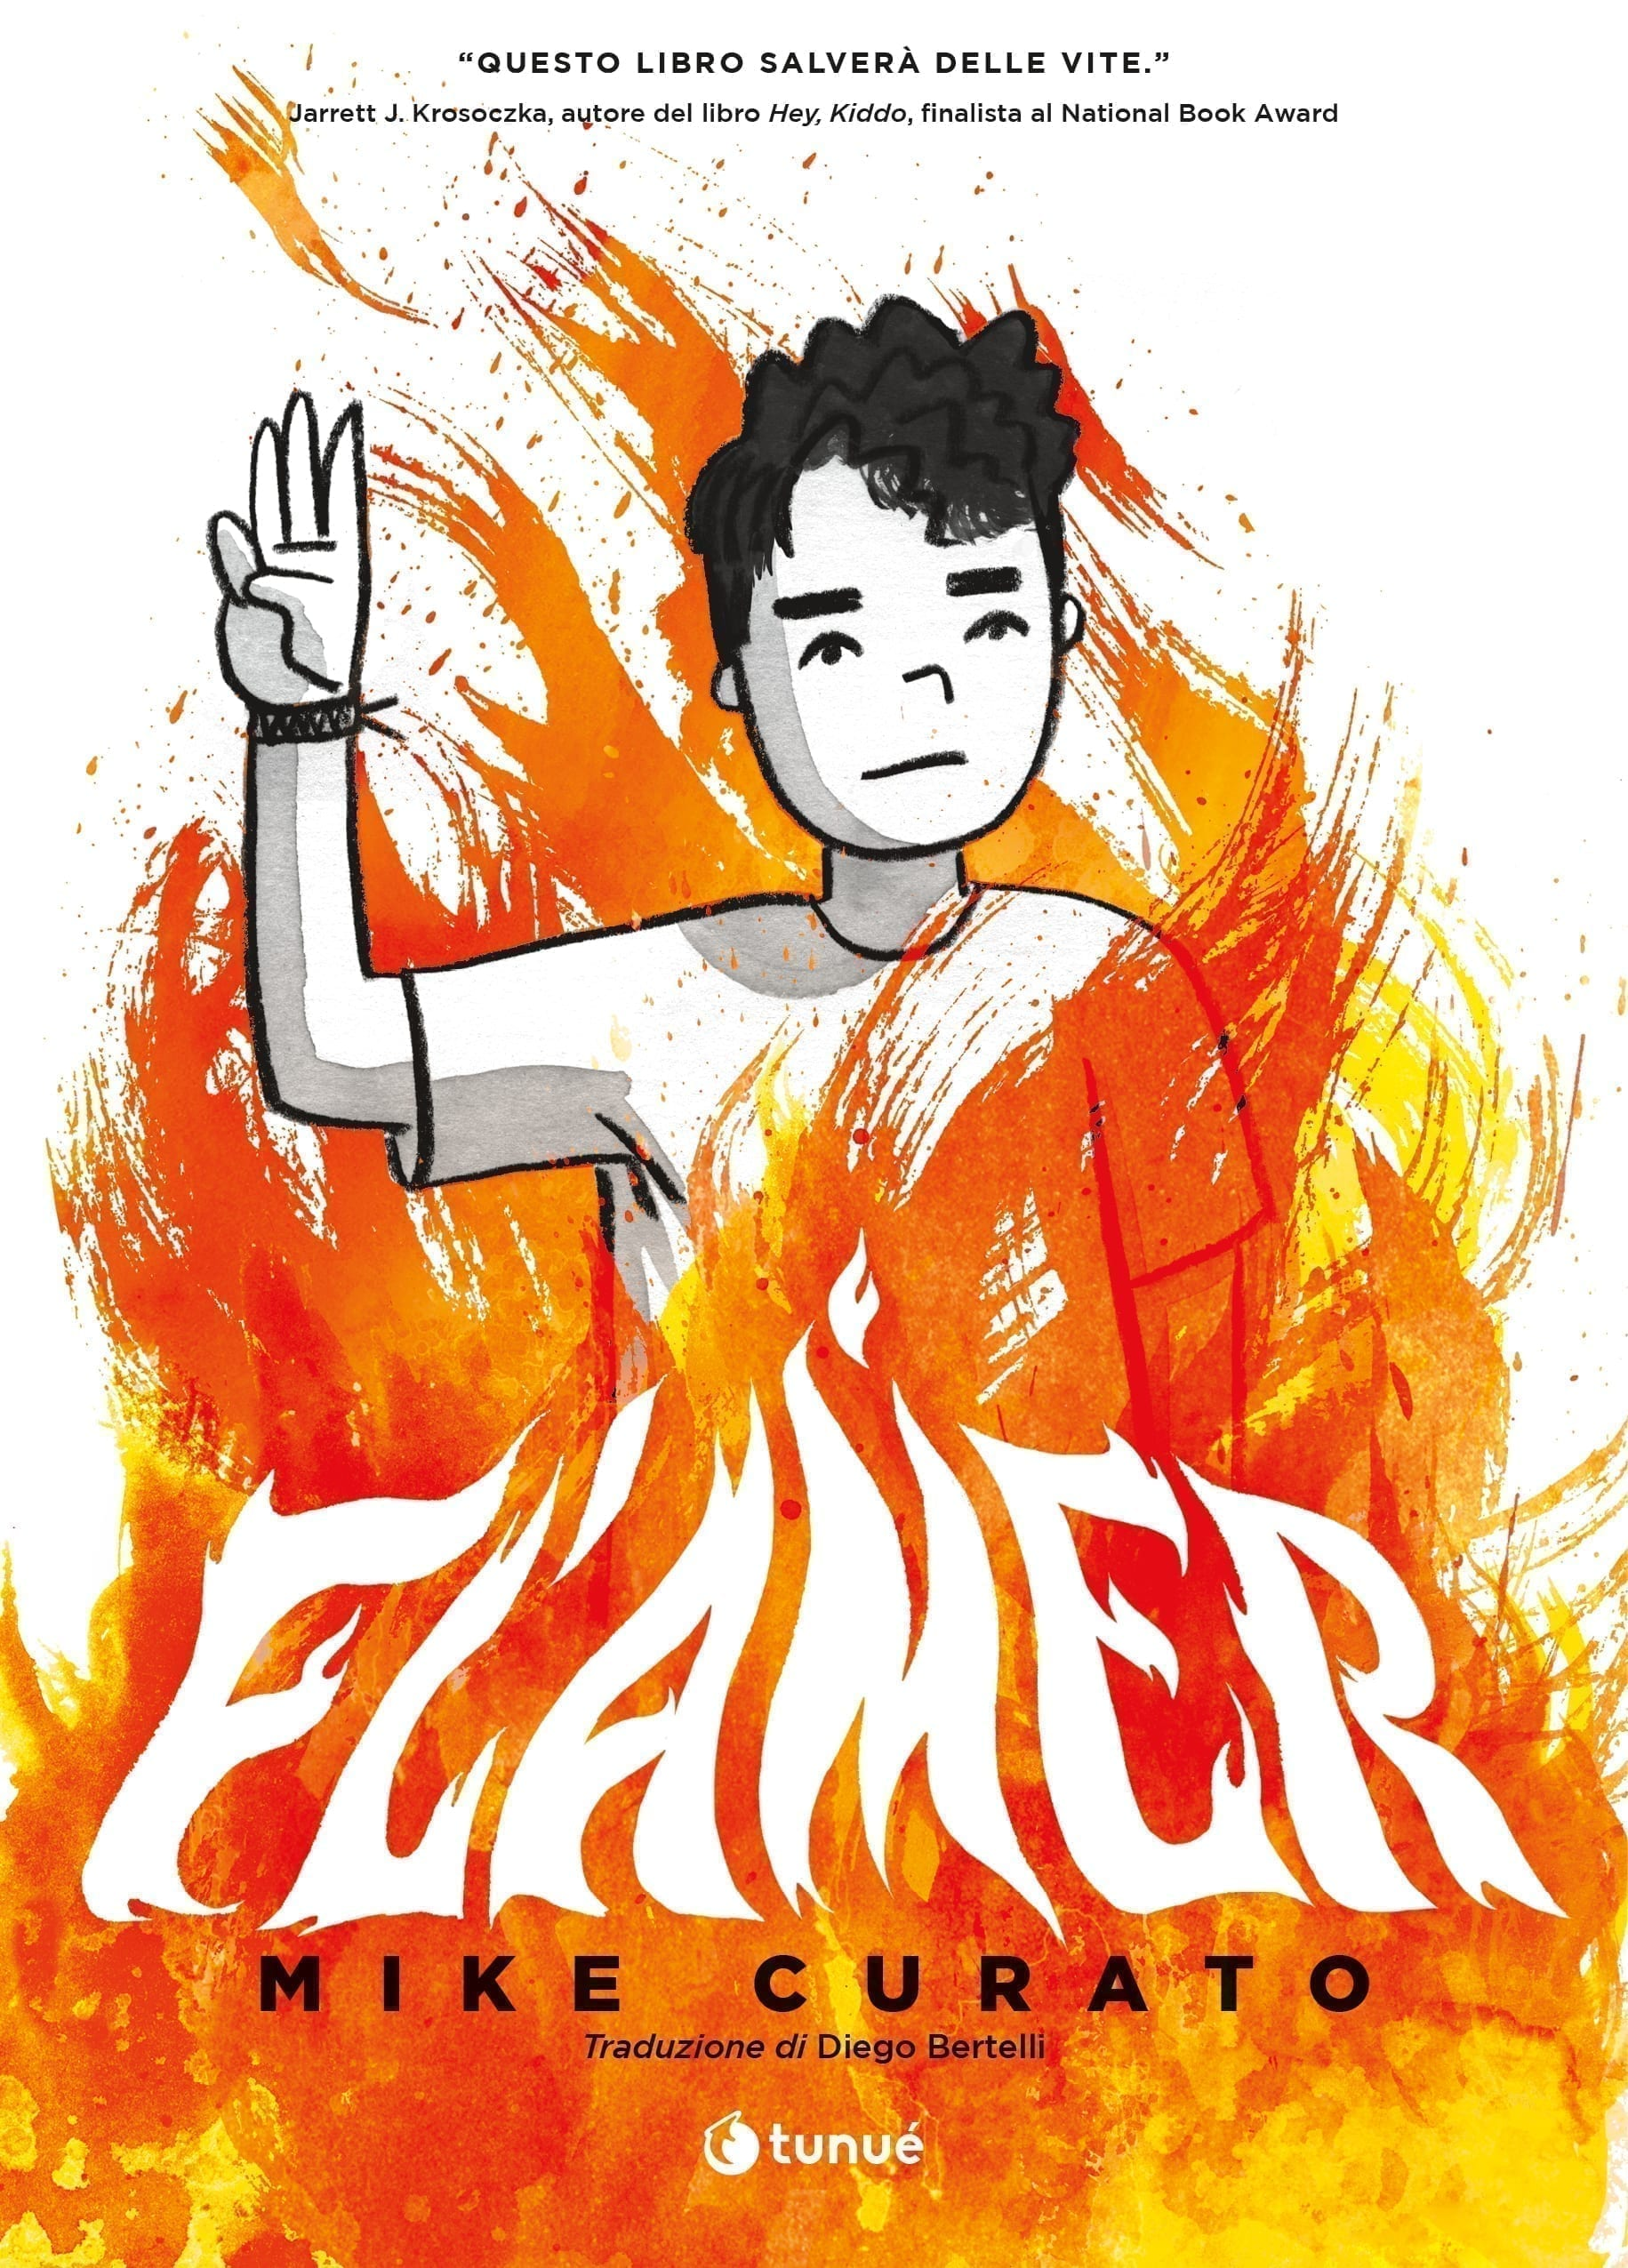 Flamer, Mike Curato, graphic novel